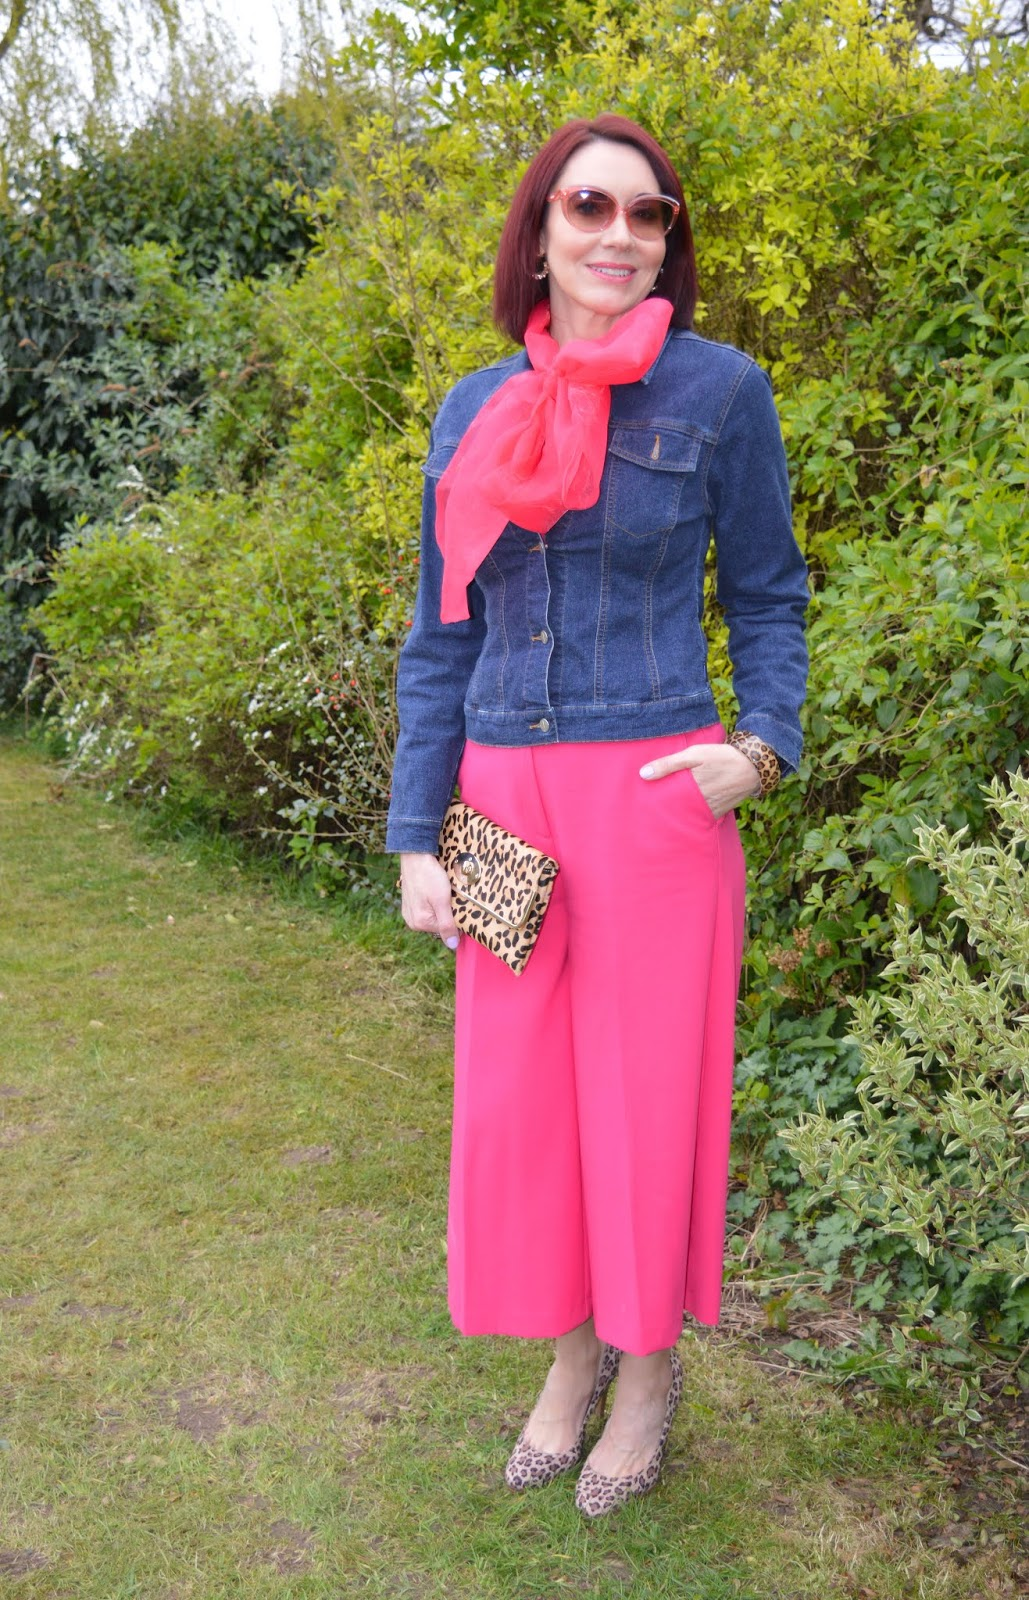 A denim jacket is given a new twist with fuchsia pink and leopard print accessories worn by over-40s style blogger Emma Peach